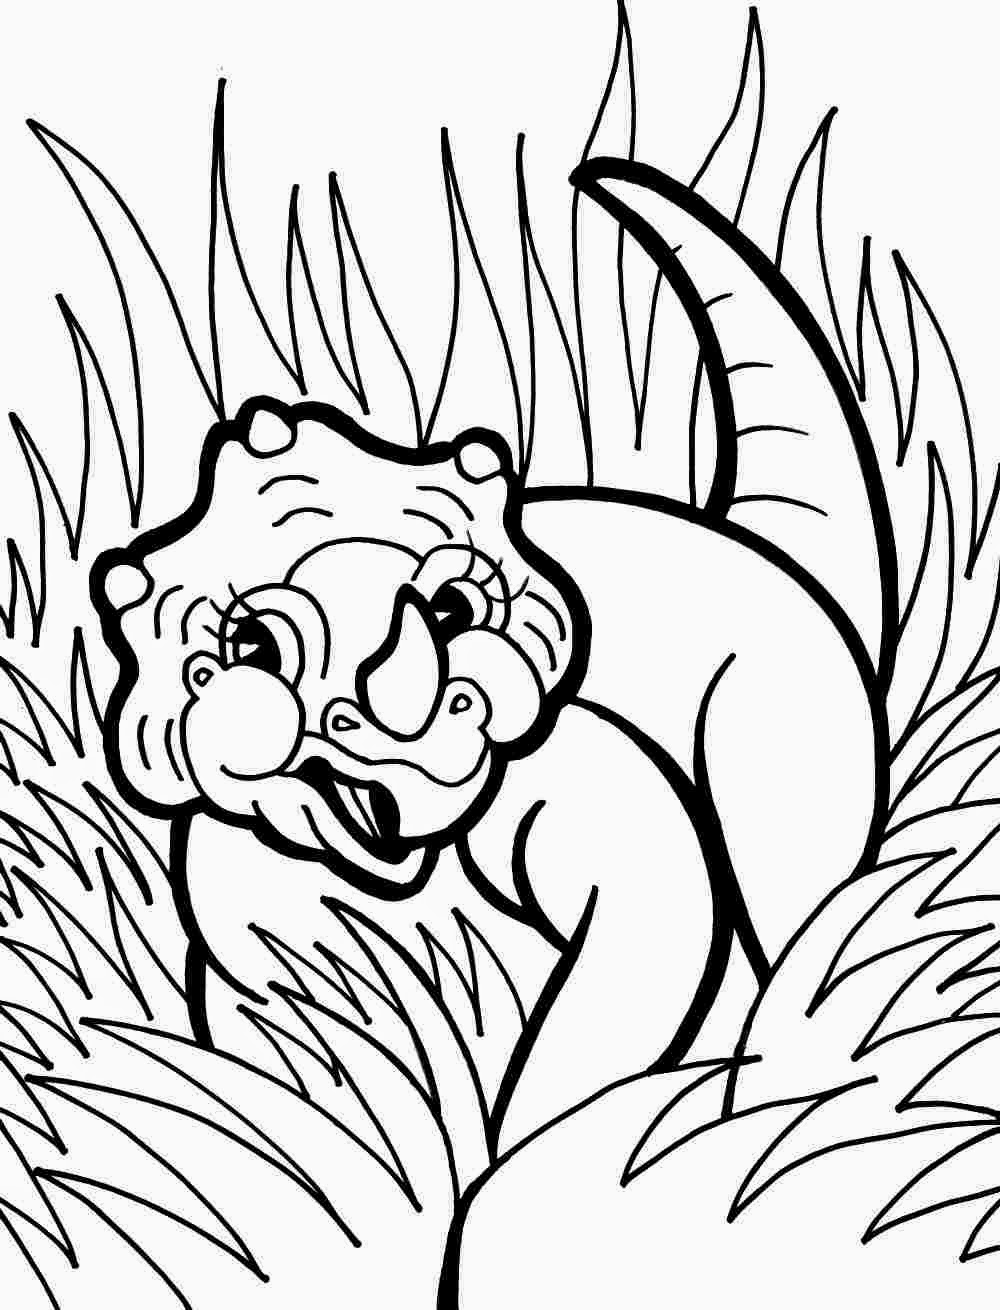 dinosaur print out coloring pages dinosaurs tyrannosaurus coloring page pages coloring out dinosaur print